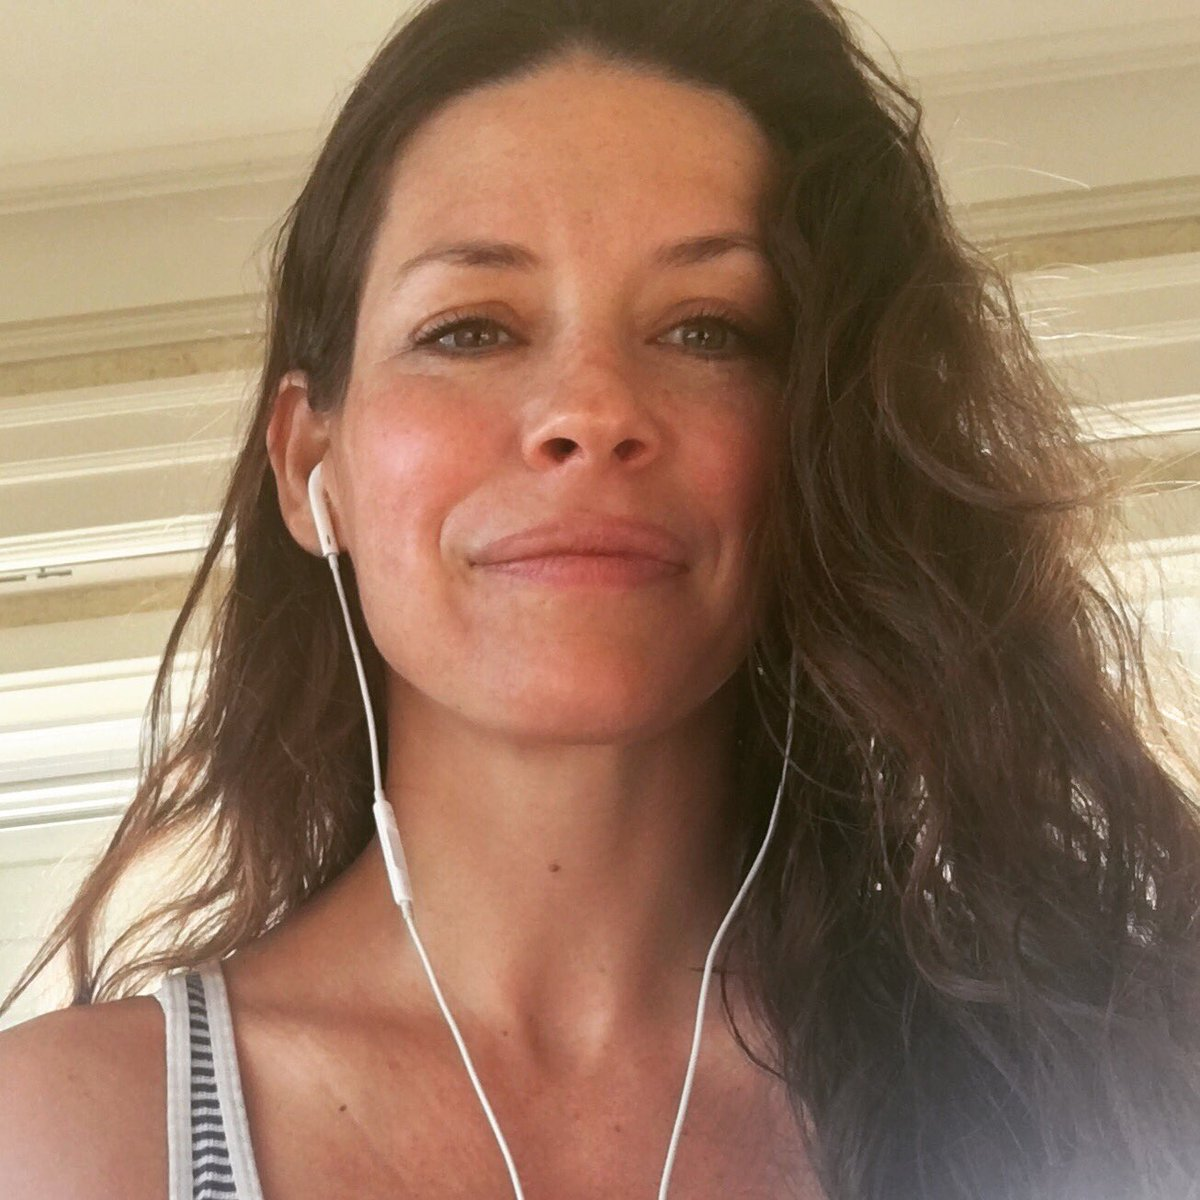 Twitter Evangeline Lilly nude photos 2019